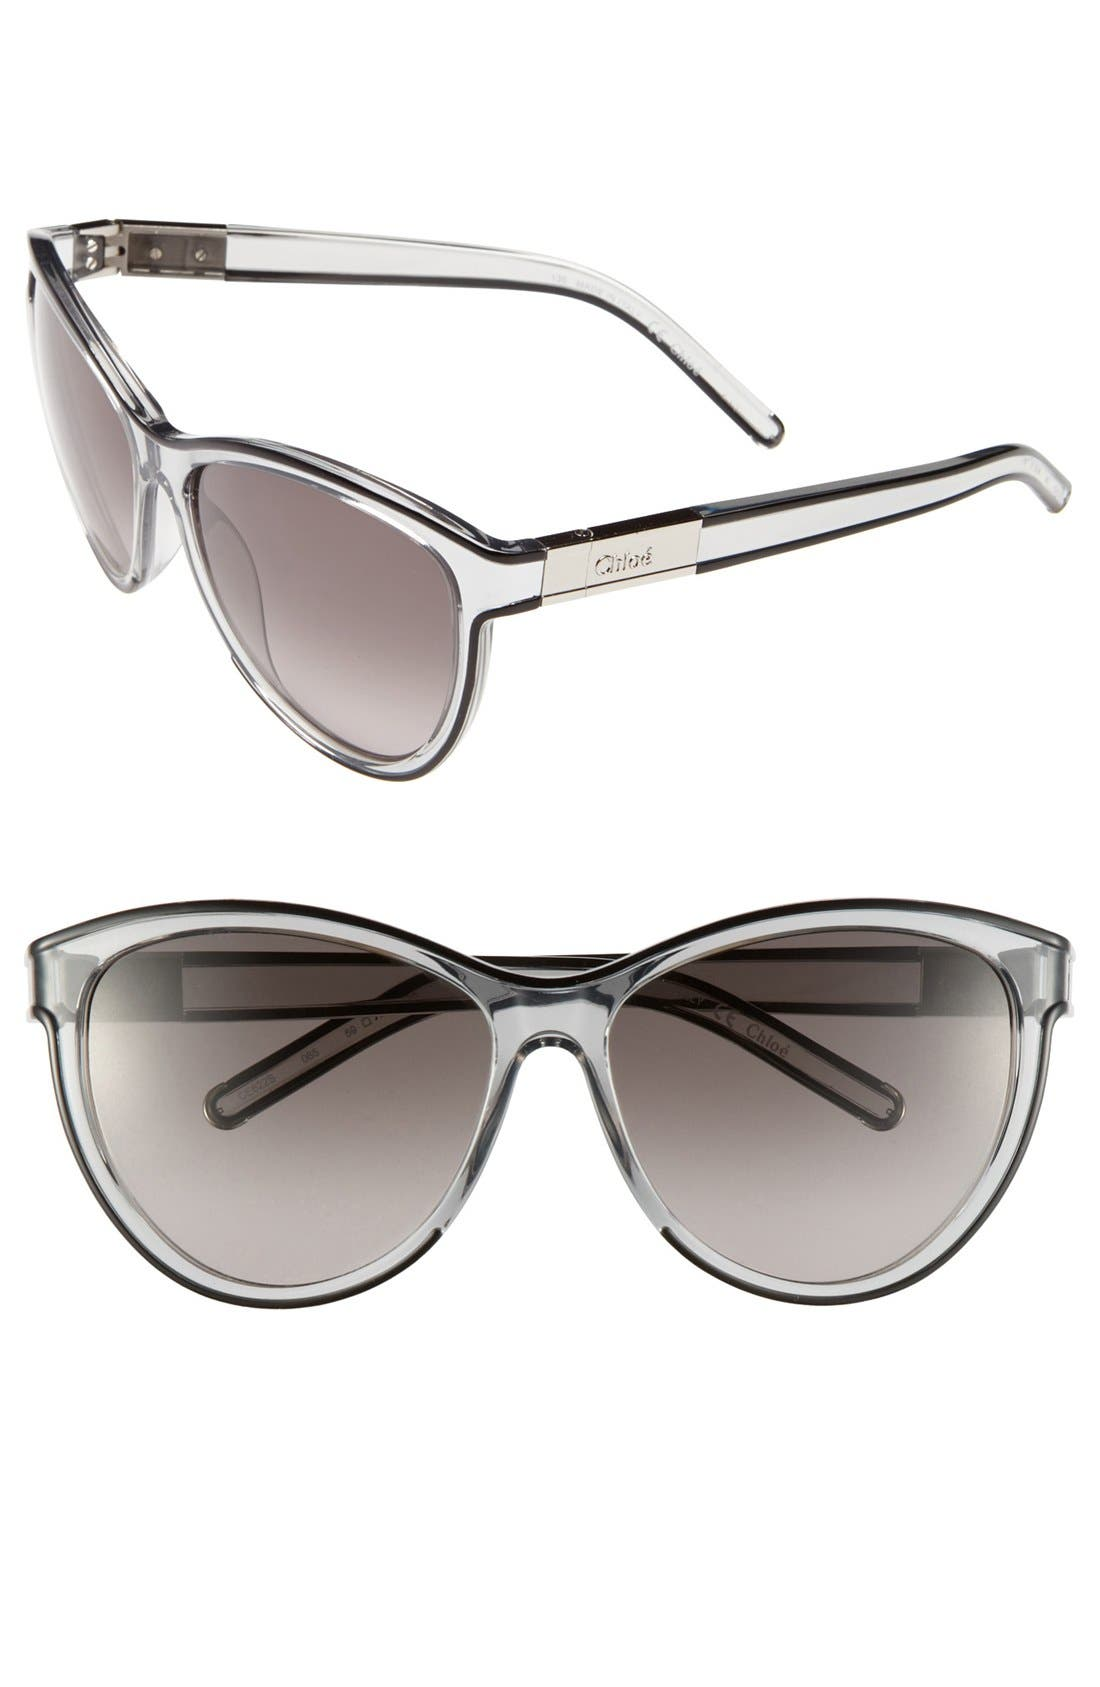 Alternate Image 1 Selected - Chloé 'Ivy' 59mm Sunglasses